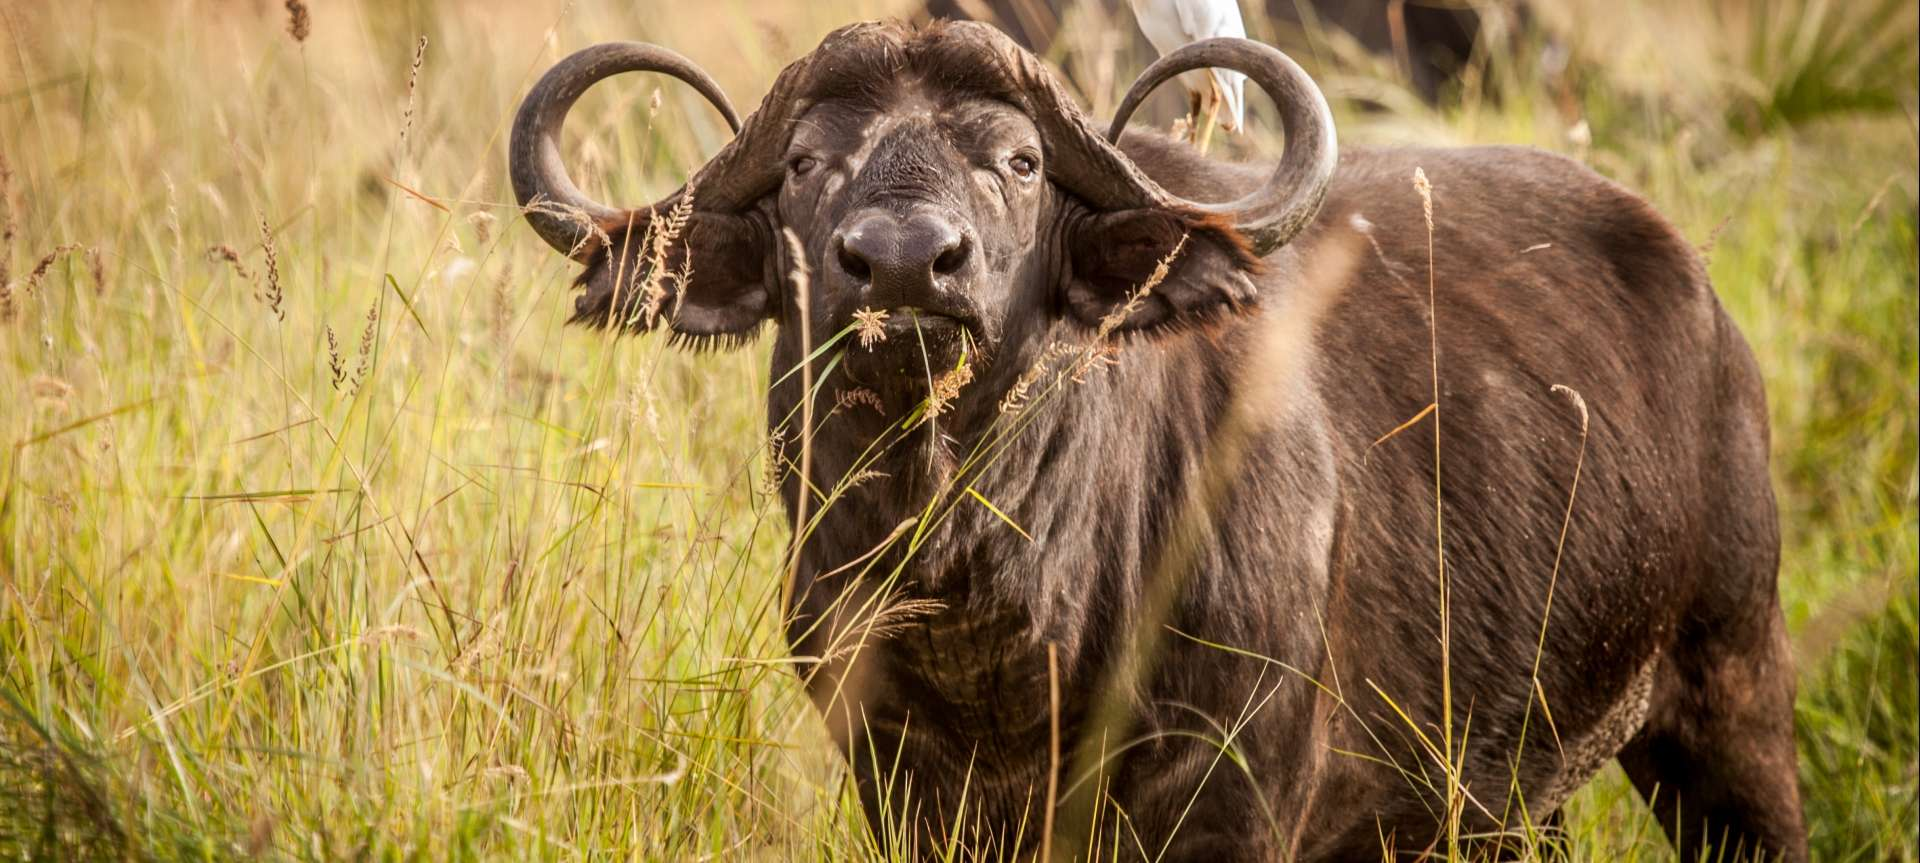 The South africa big 5 animals pictures